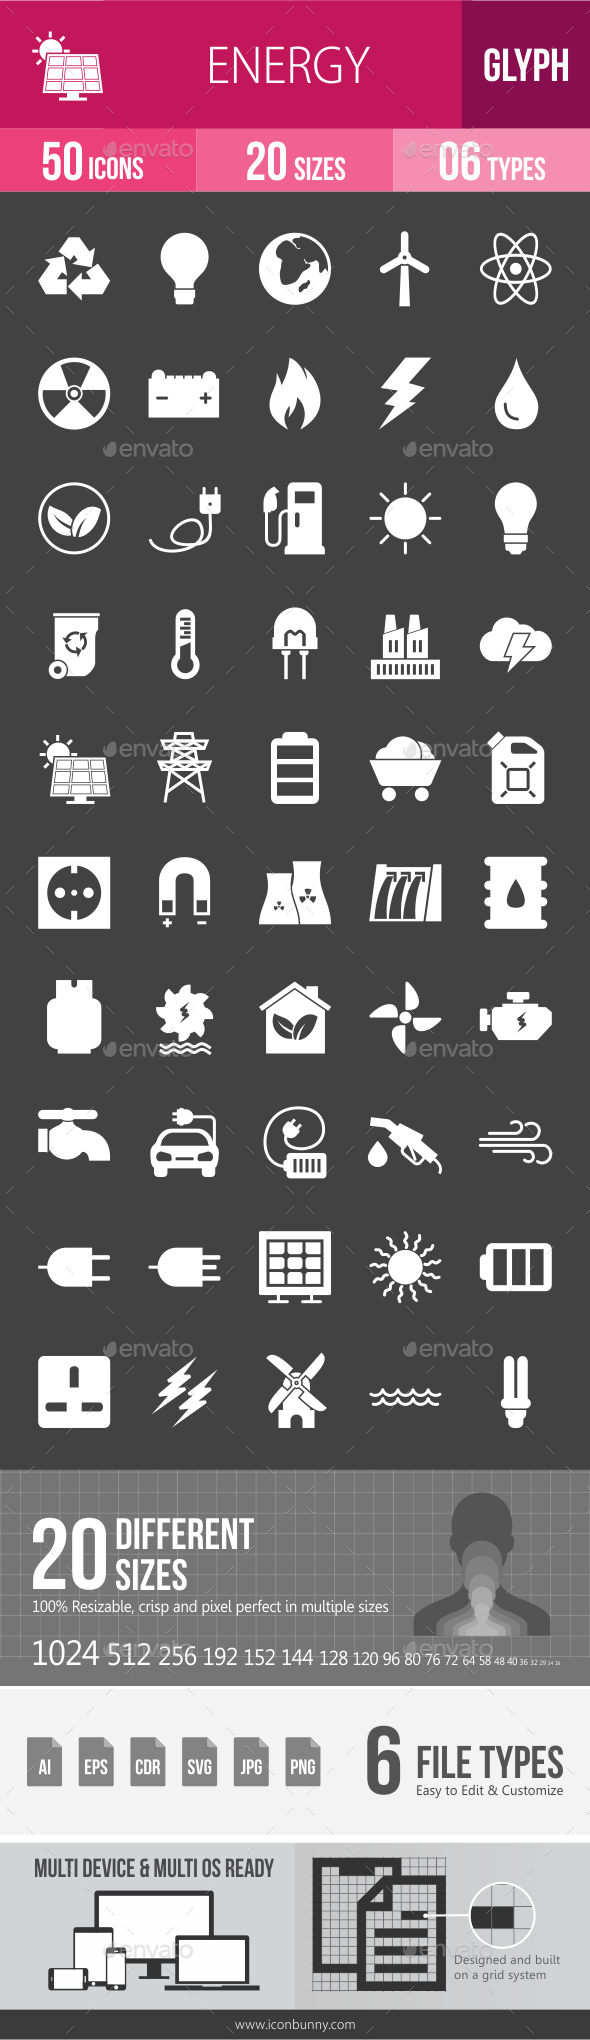 Energy Glyph Inverted Icons - Icons